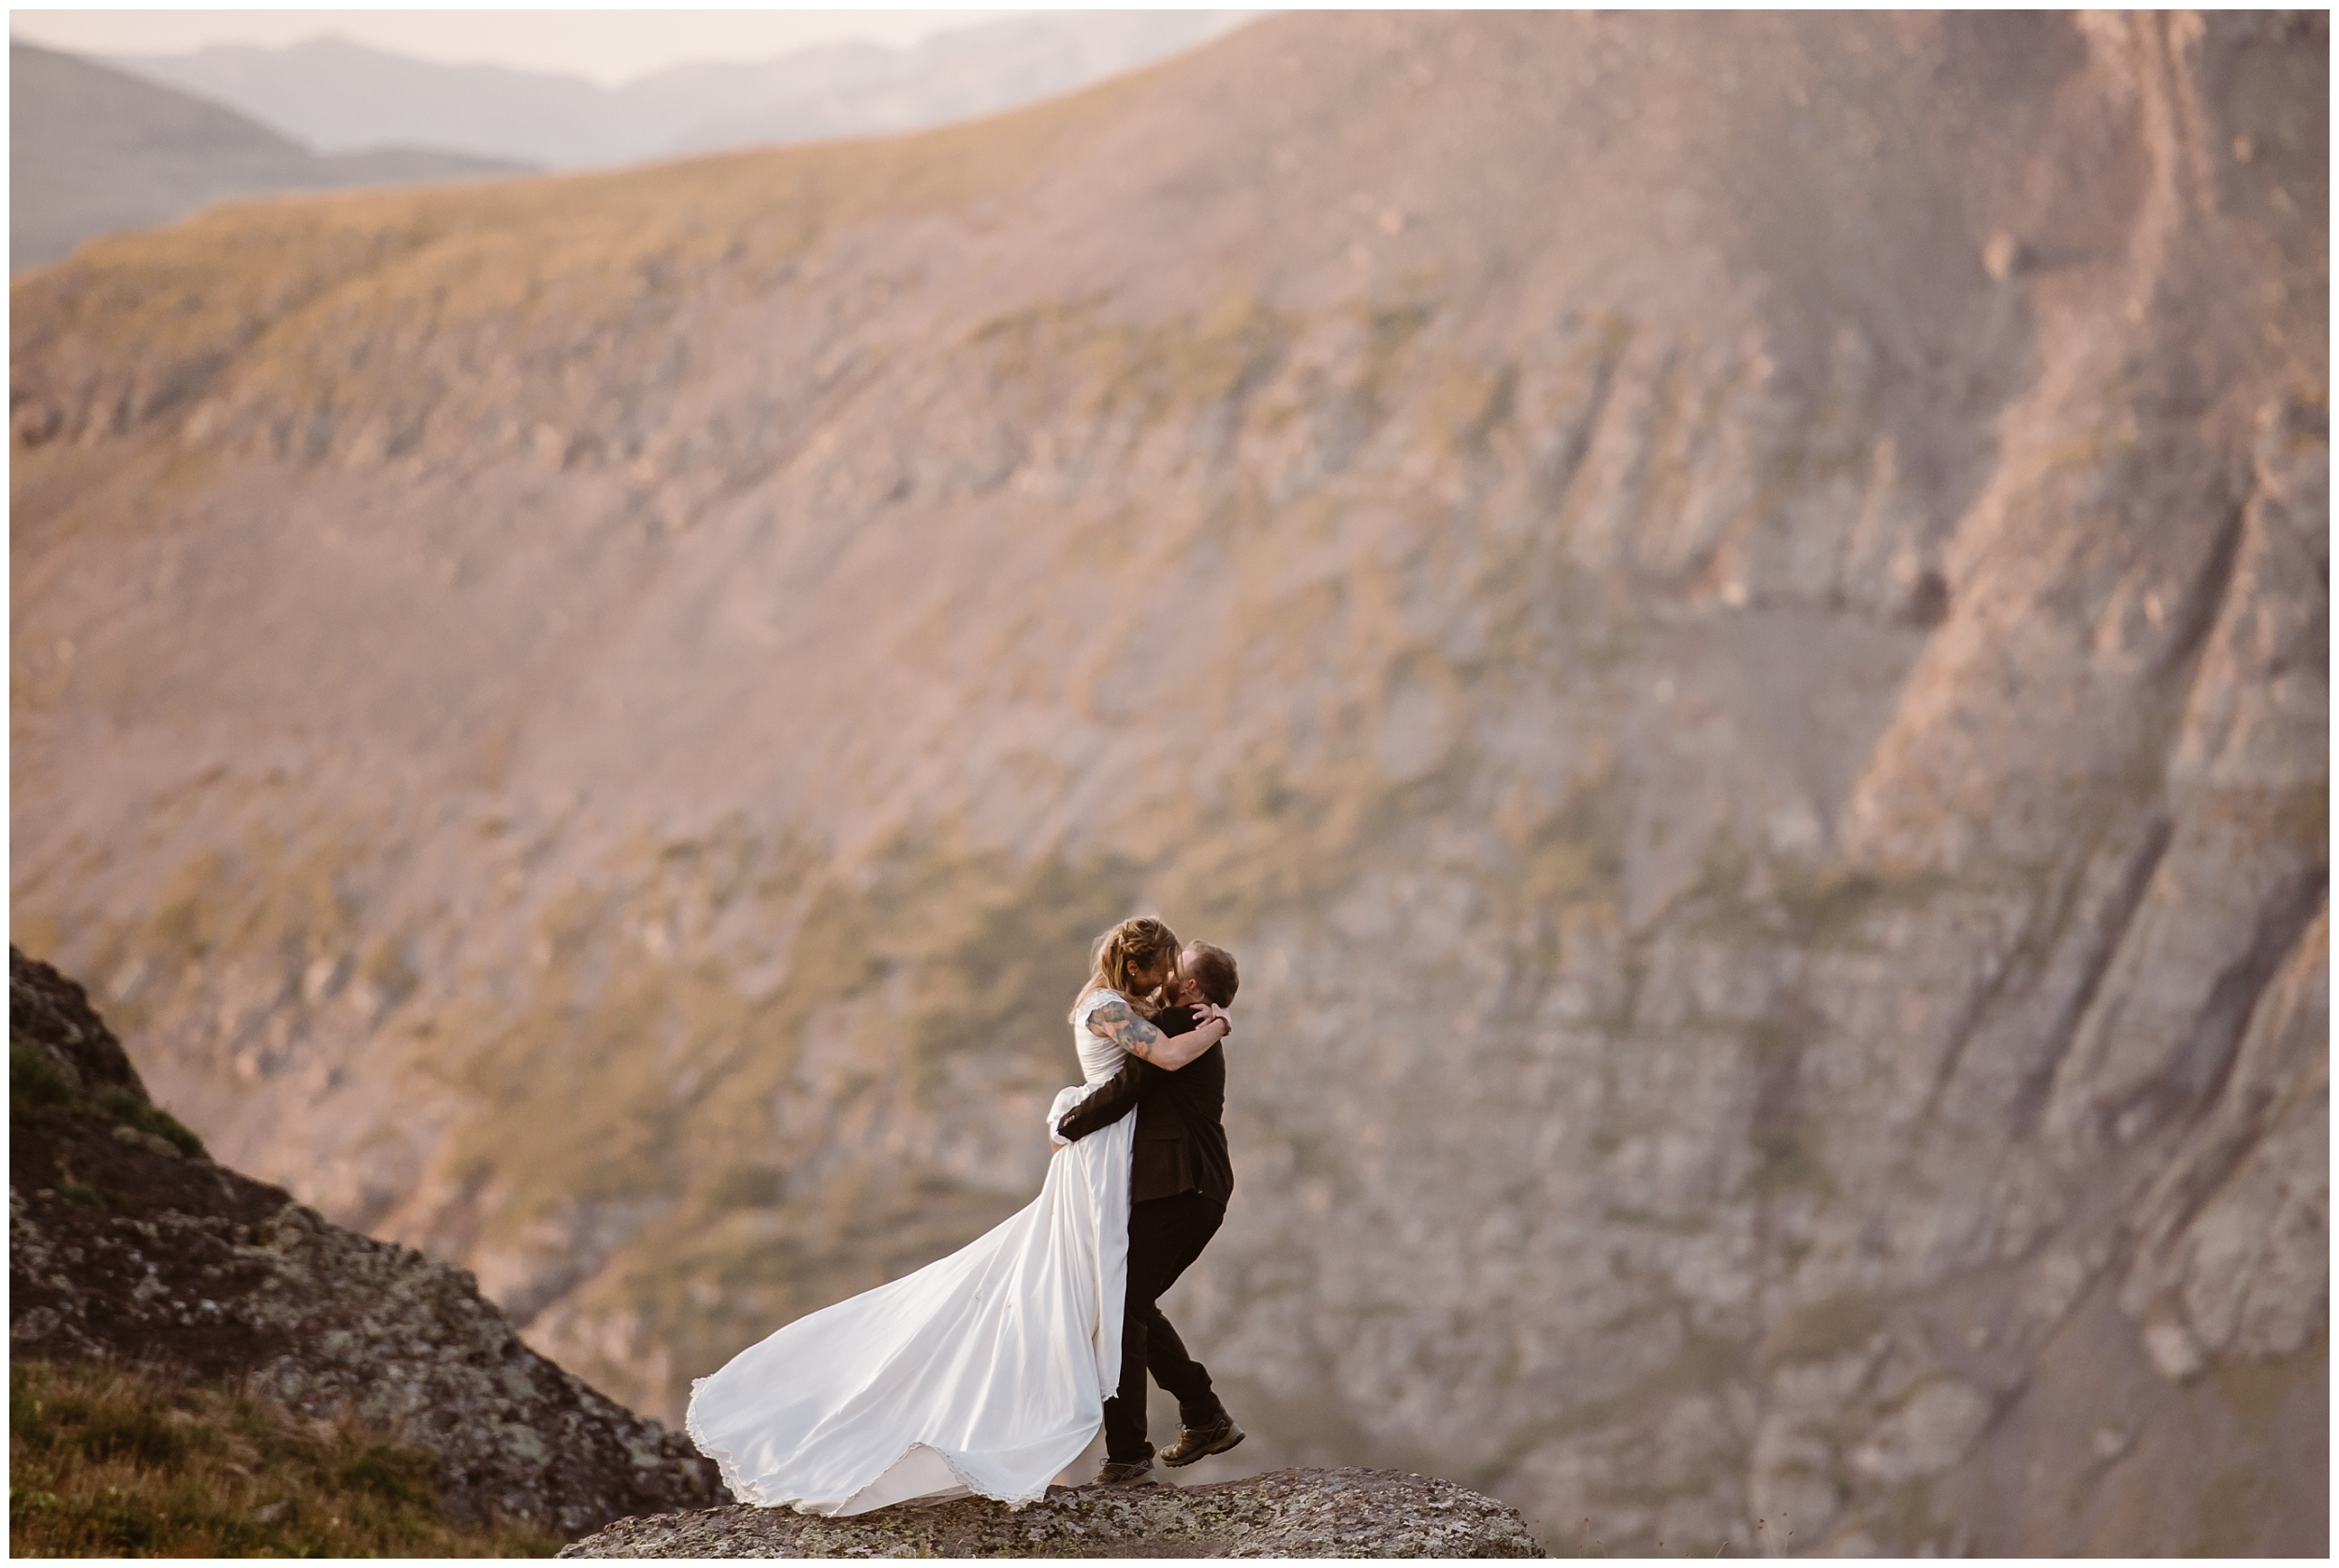 Nick embraces Brecka and picks her up in front of an epic view of an Ouray, Colorado mountain range. The two chose this adventure elopement because they wanted a Colorado mountain wedding that was perfect for them. The location was their unique eloping idea!